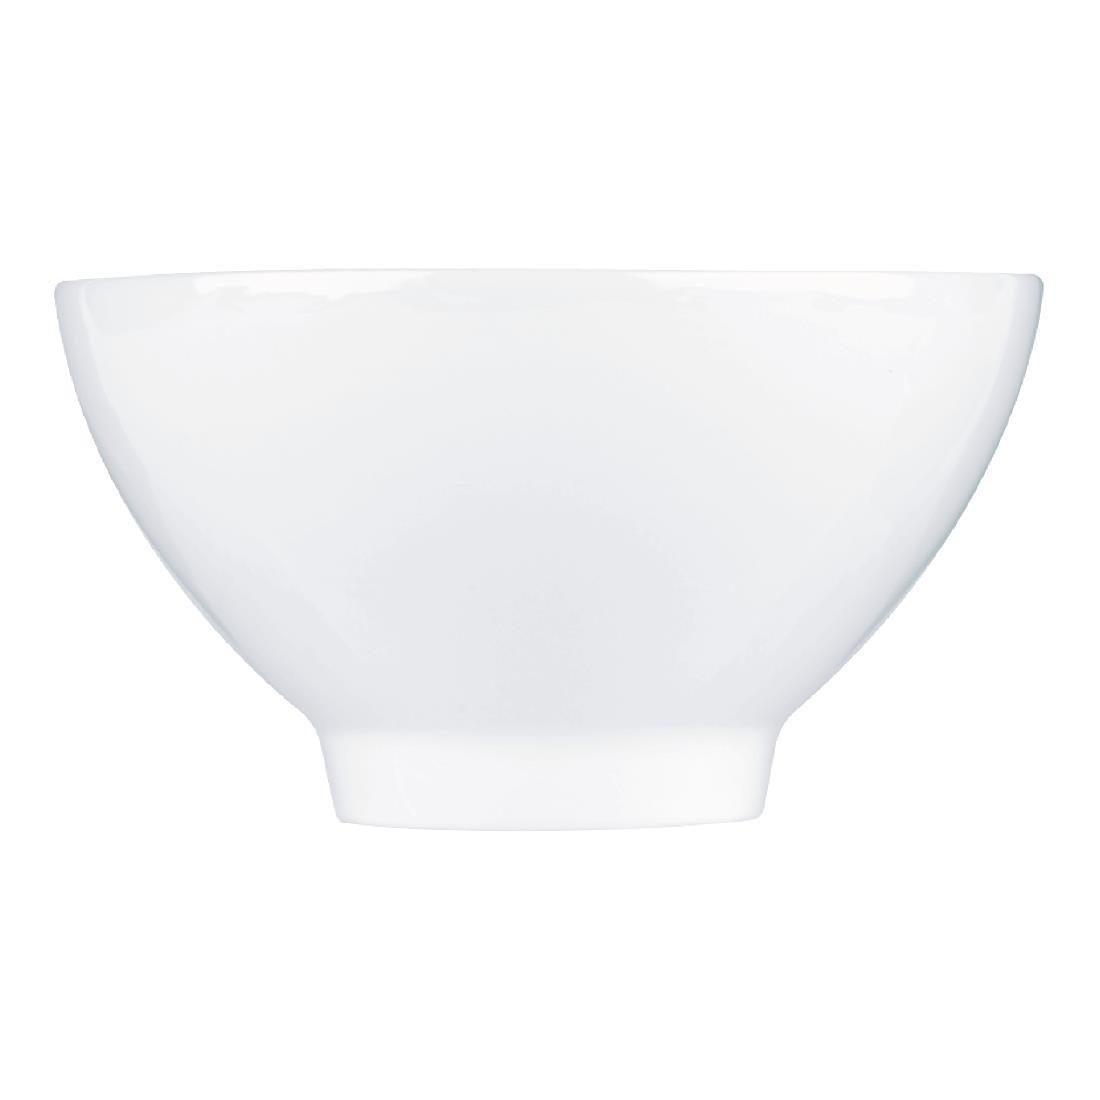 Y847 - Balance Coupe Bowl